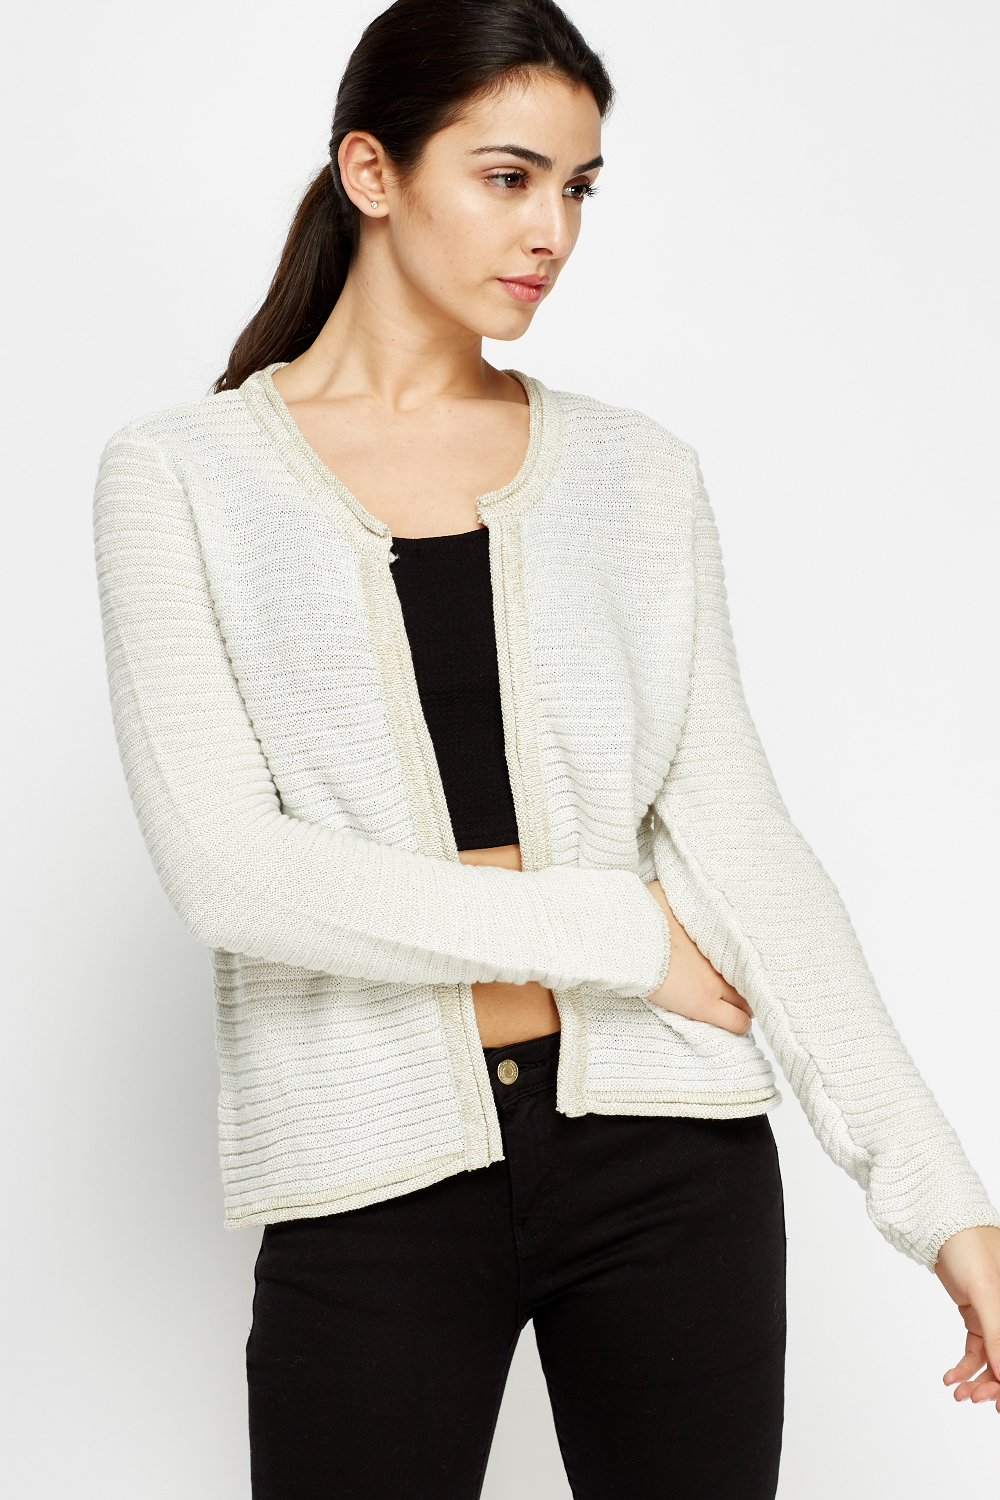 Metallic Ribbed Cropped Cardigan - Off White/Gold - Just £5